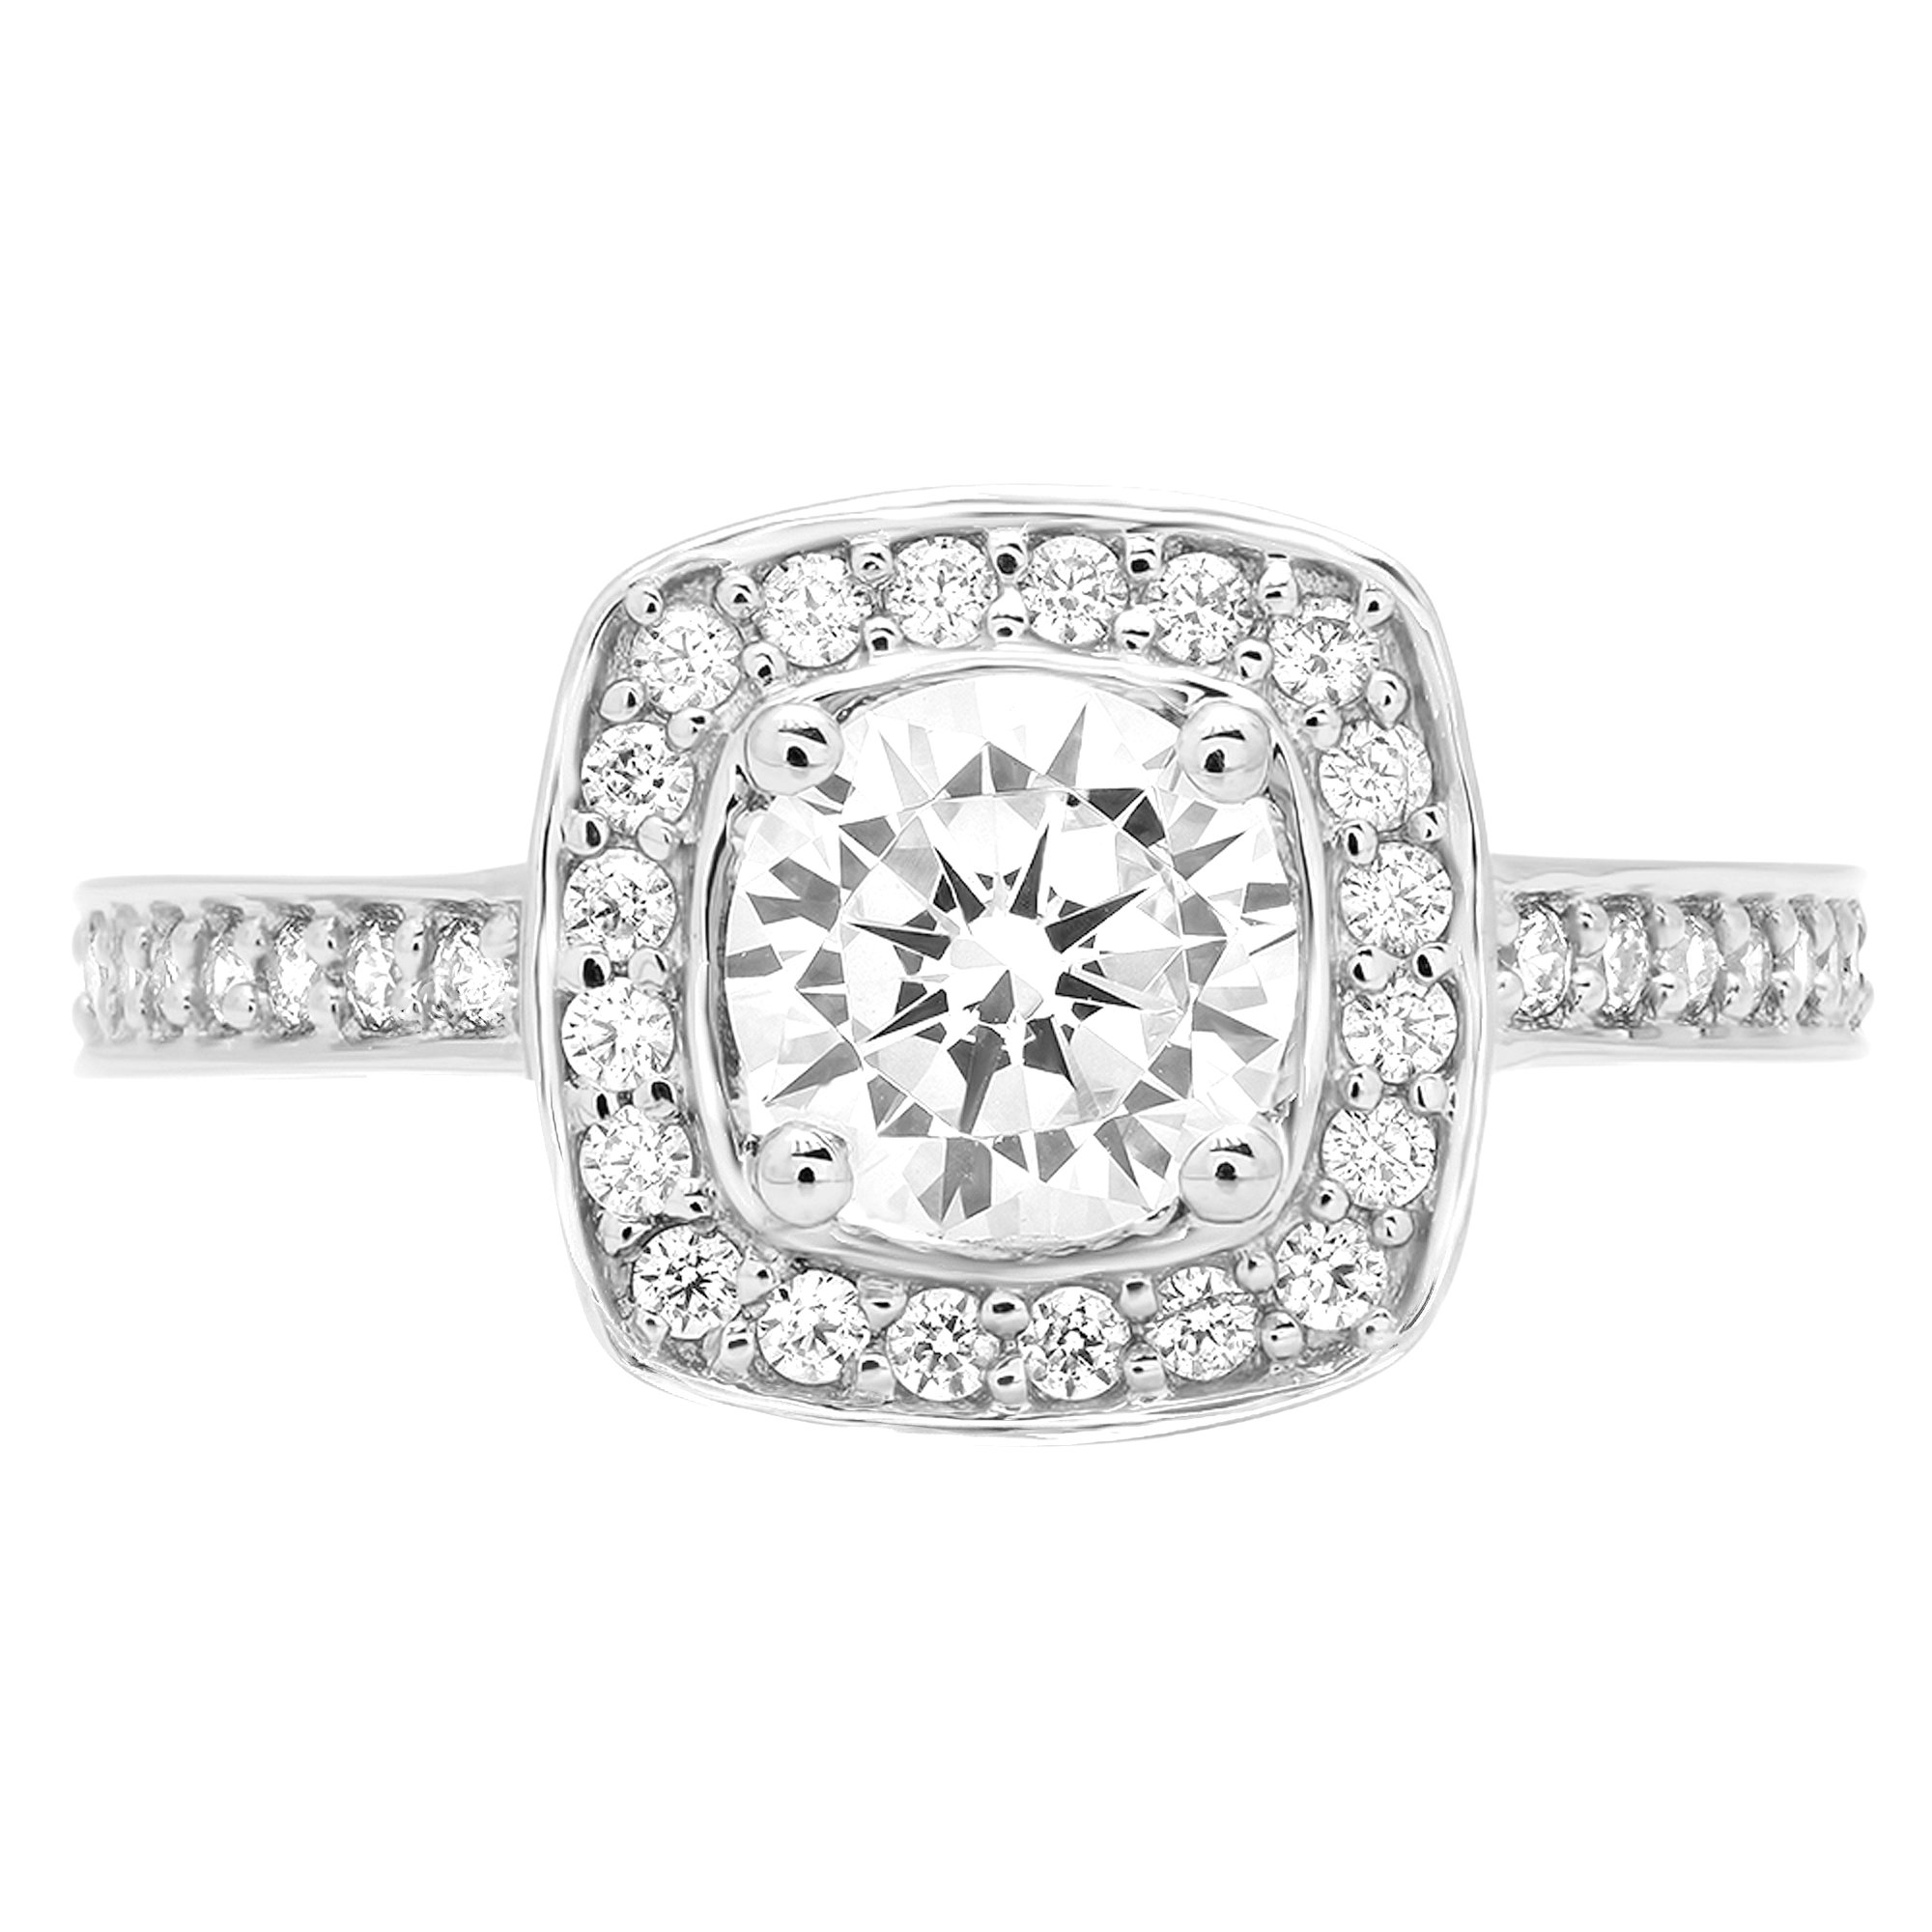 1.46 ct Brilliant Round Cut Halo Solitaire Statement Simulated Diamond Ring in Solid 14k White Gold for Women, 6.25 by Clara Pucci